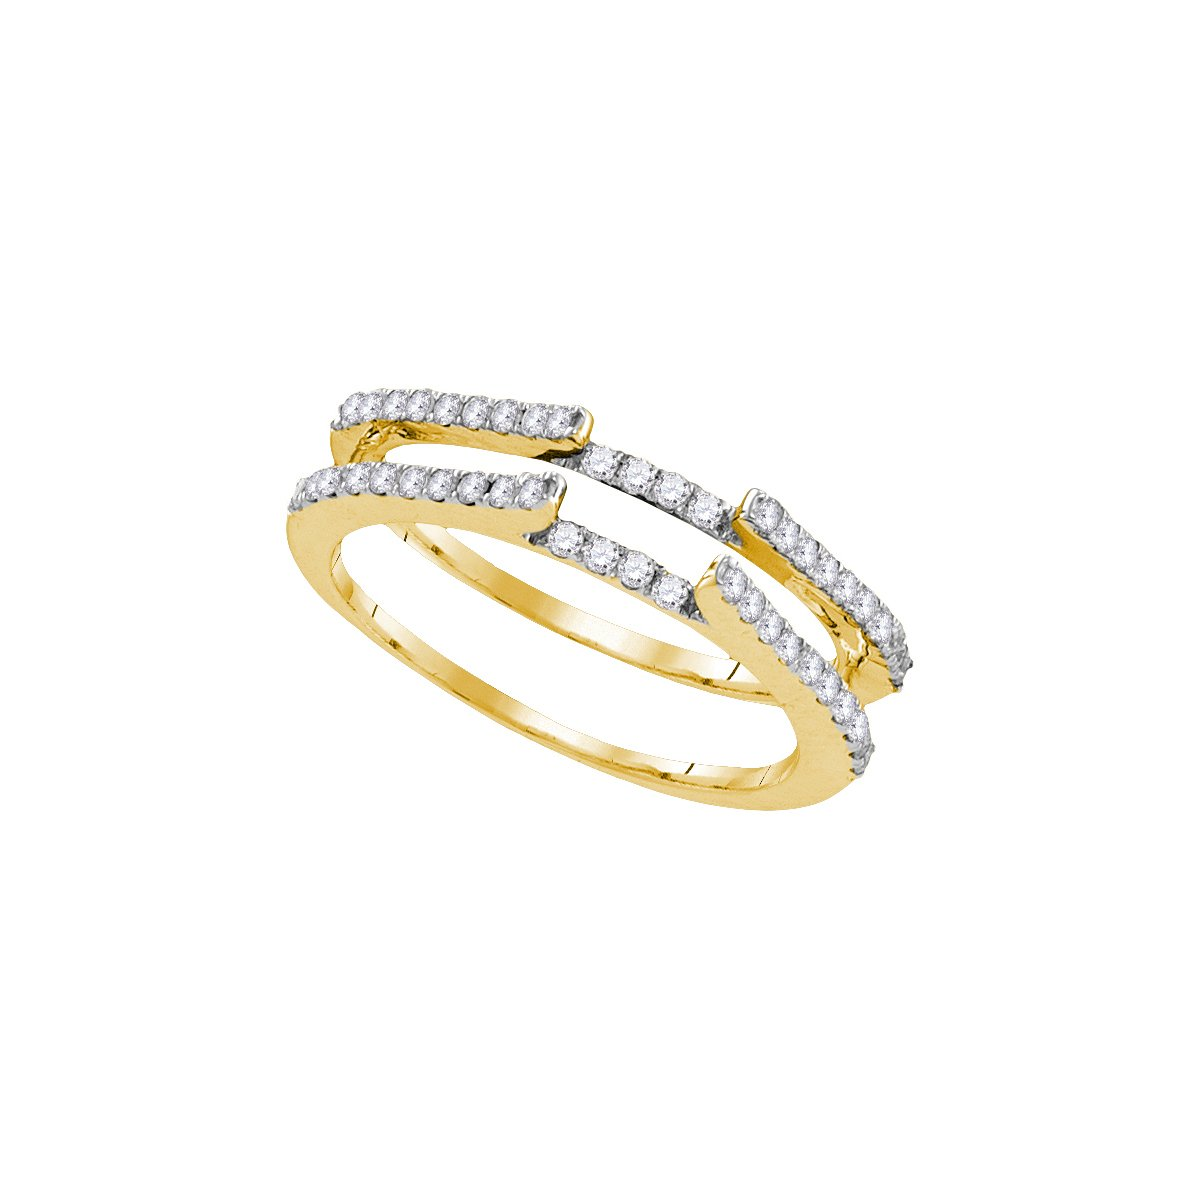 14kt Yellow Gold Womens Round Diamond Ring Guard Wrap Solitaire Enhancer 1/2 Cttw (I1-I2 clarity; H-I color)